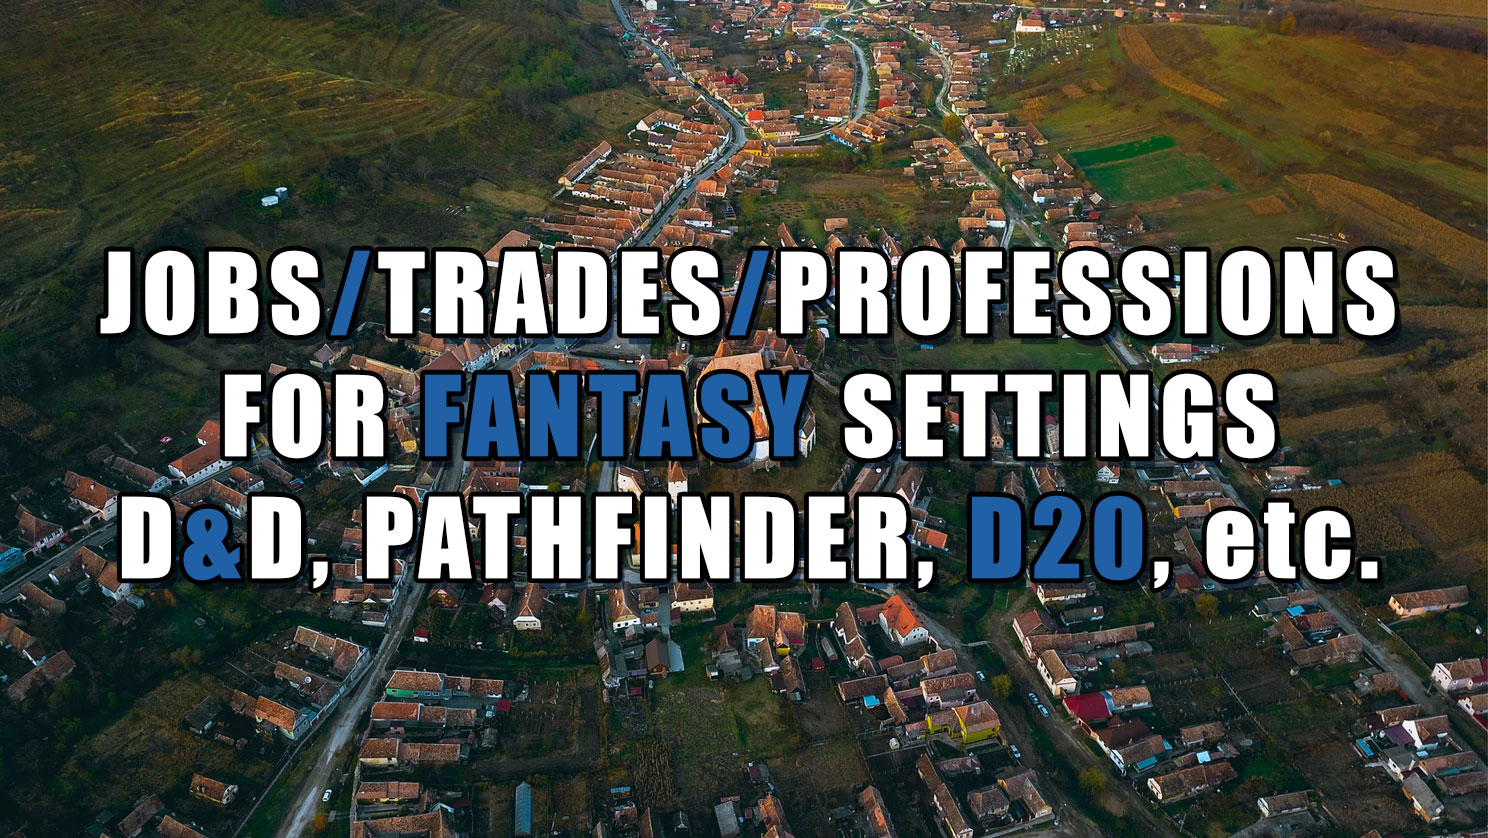 Historic Professions Jobs Trades Careers for Fantasy RPG Settings Dungeons and Dragons D&D Pathfinder Forgotten Realms Historical Crafts Person NPC Characters D20 Role Playing Game